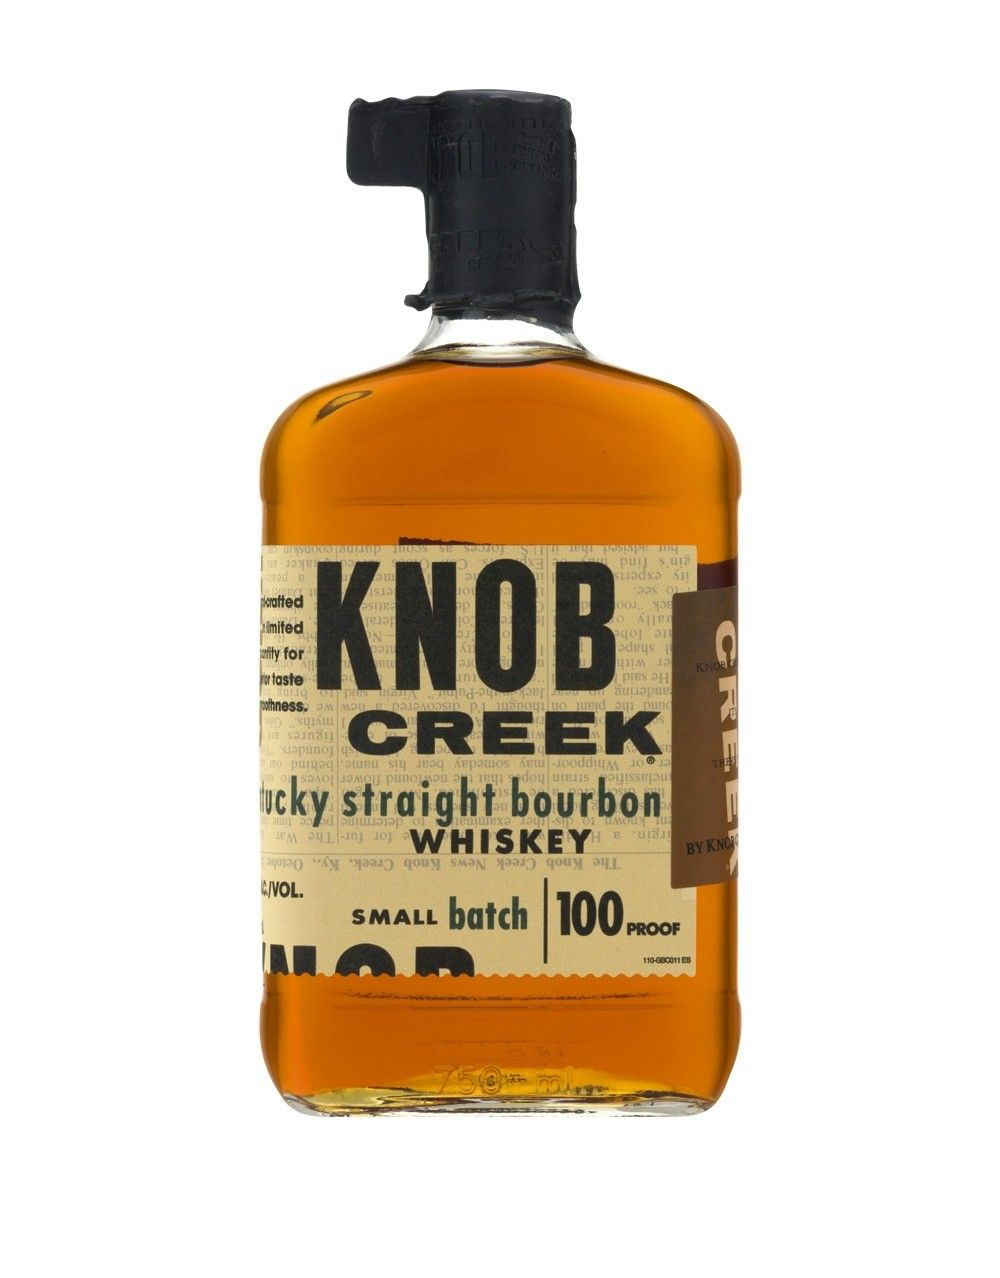 KNOB CREEK  AROMA  A classic bourbon with a caramel scent and hints of vanilla. Some cinnamon notes and maple syrup. Soft oak accompanies a light hint of corn.  TASTE  Strong caramel flavors with a hint of vanilla. A slightly musty corn flavor runs through with some full-bodied oak balancing it out. Plenty of bourbon spice and some notes of malt that help round out the whole palate  FINISH  Caramel dominates the aftertaste and is followed up with some corn, grainy cherry like fruit and a solid wood underpinning